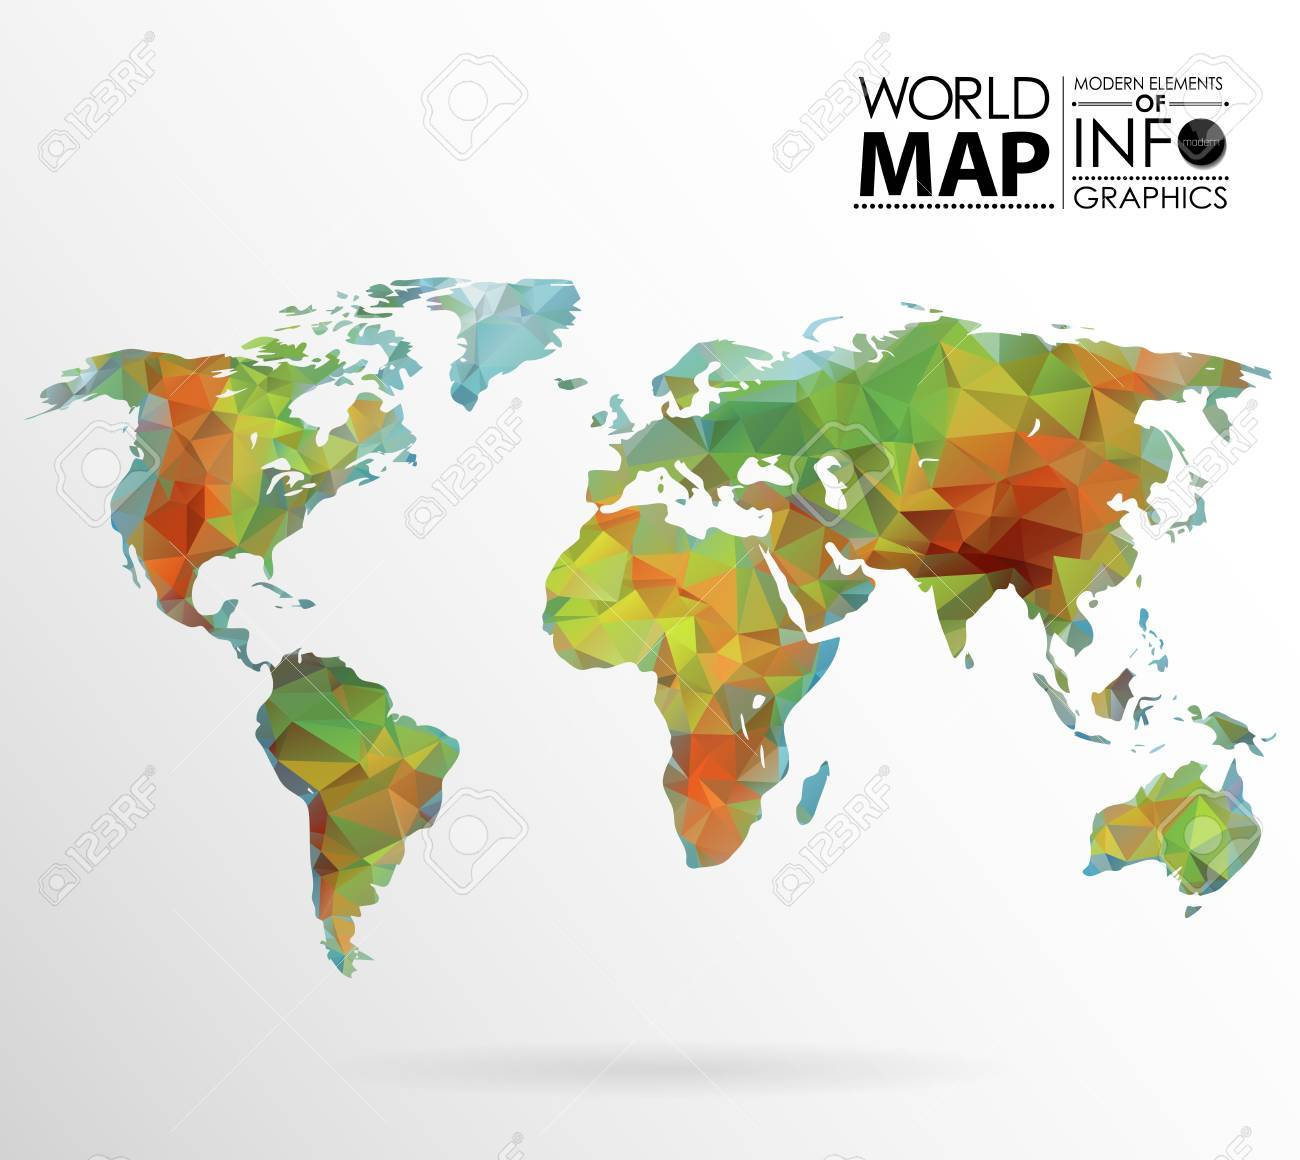 Physical world map background in polygonal style modern elements of physical world map background in polygonal style modern elements of info graphics world map gumiabroncs Gallery